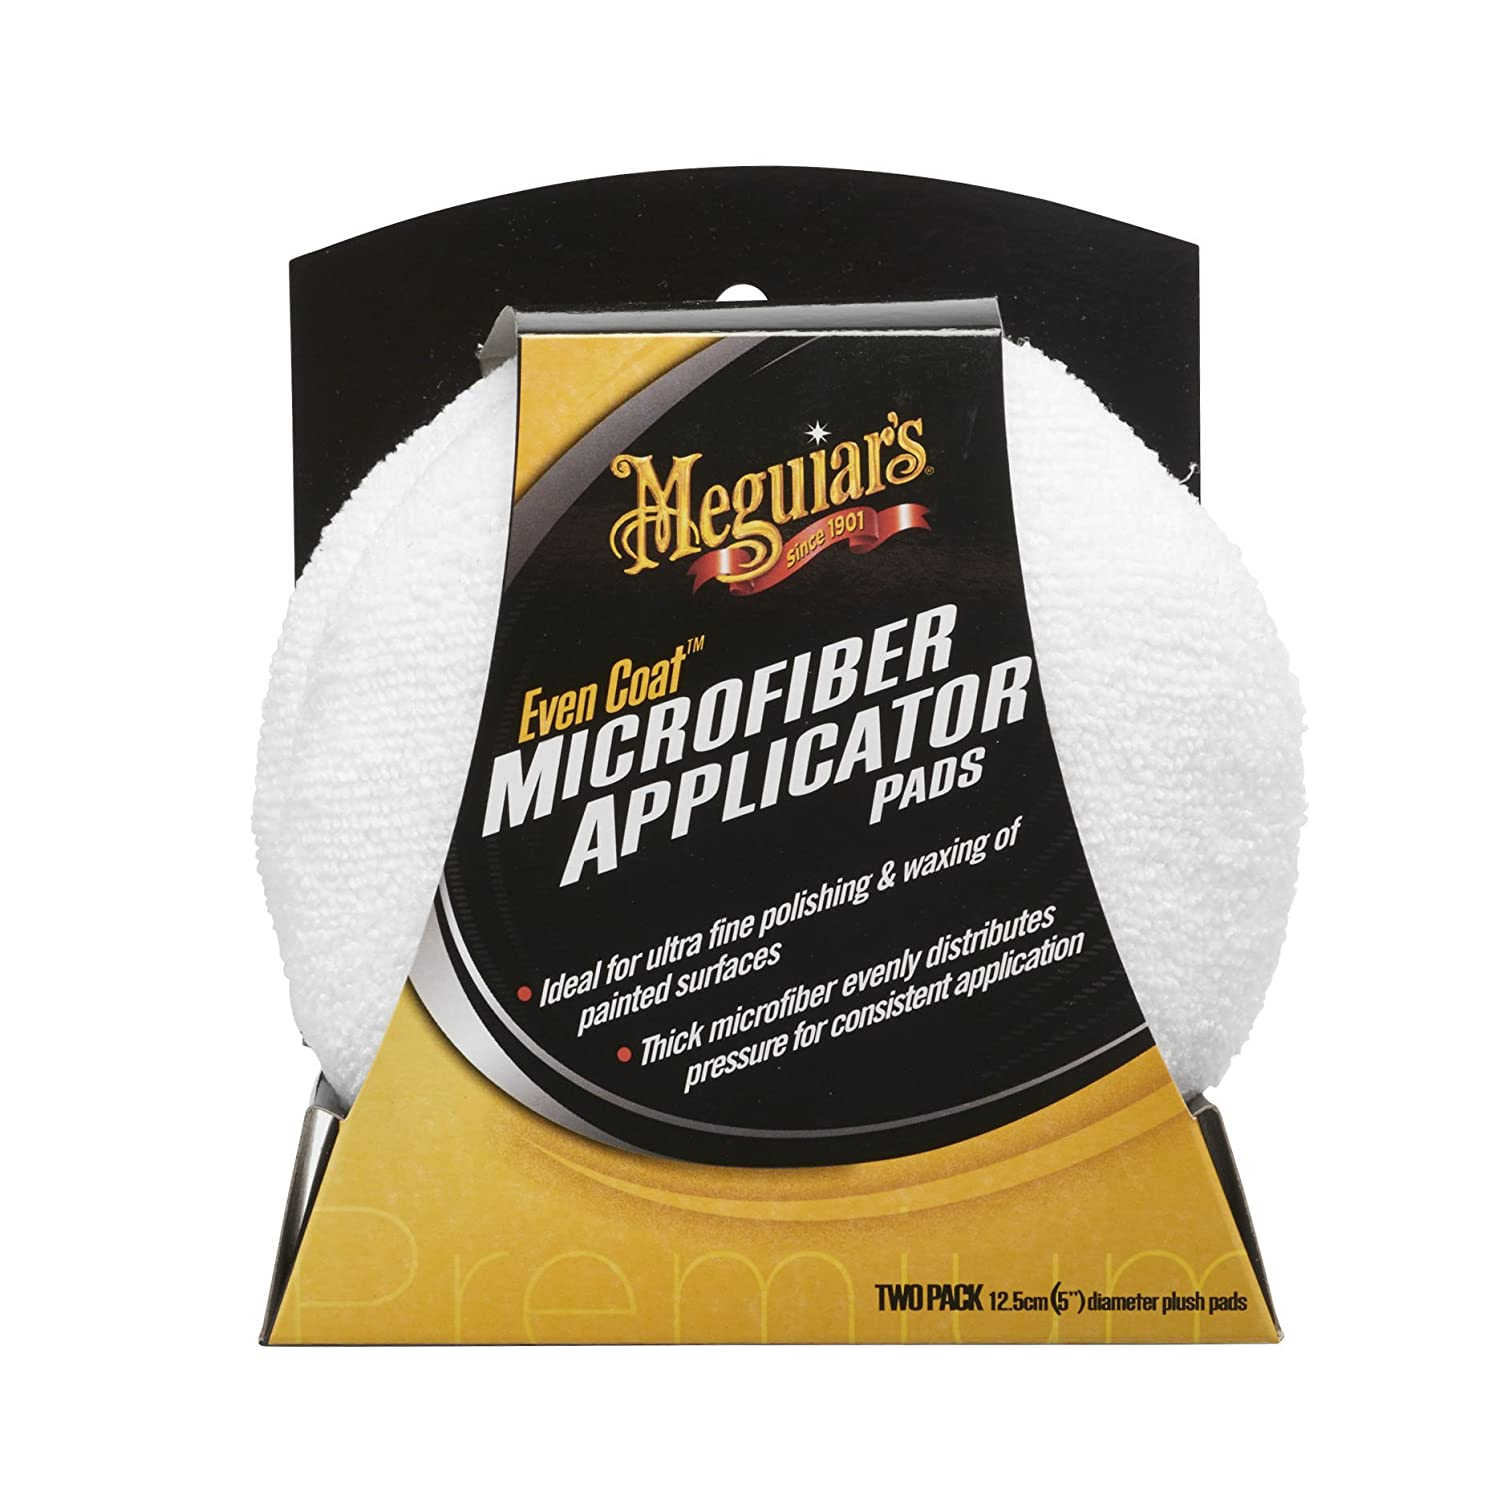 Meguiars X3080 2 Count Even Coat Applicator Meguiar' s